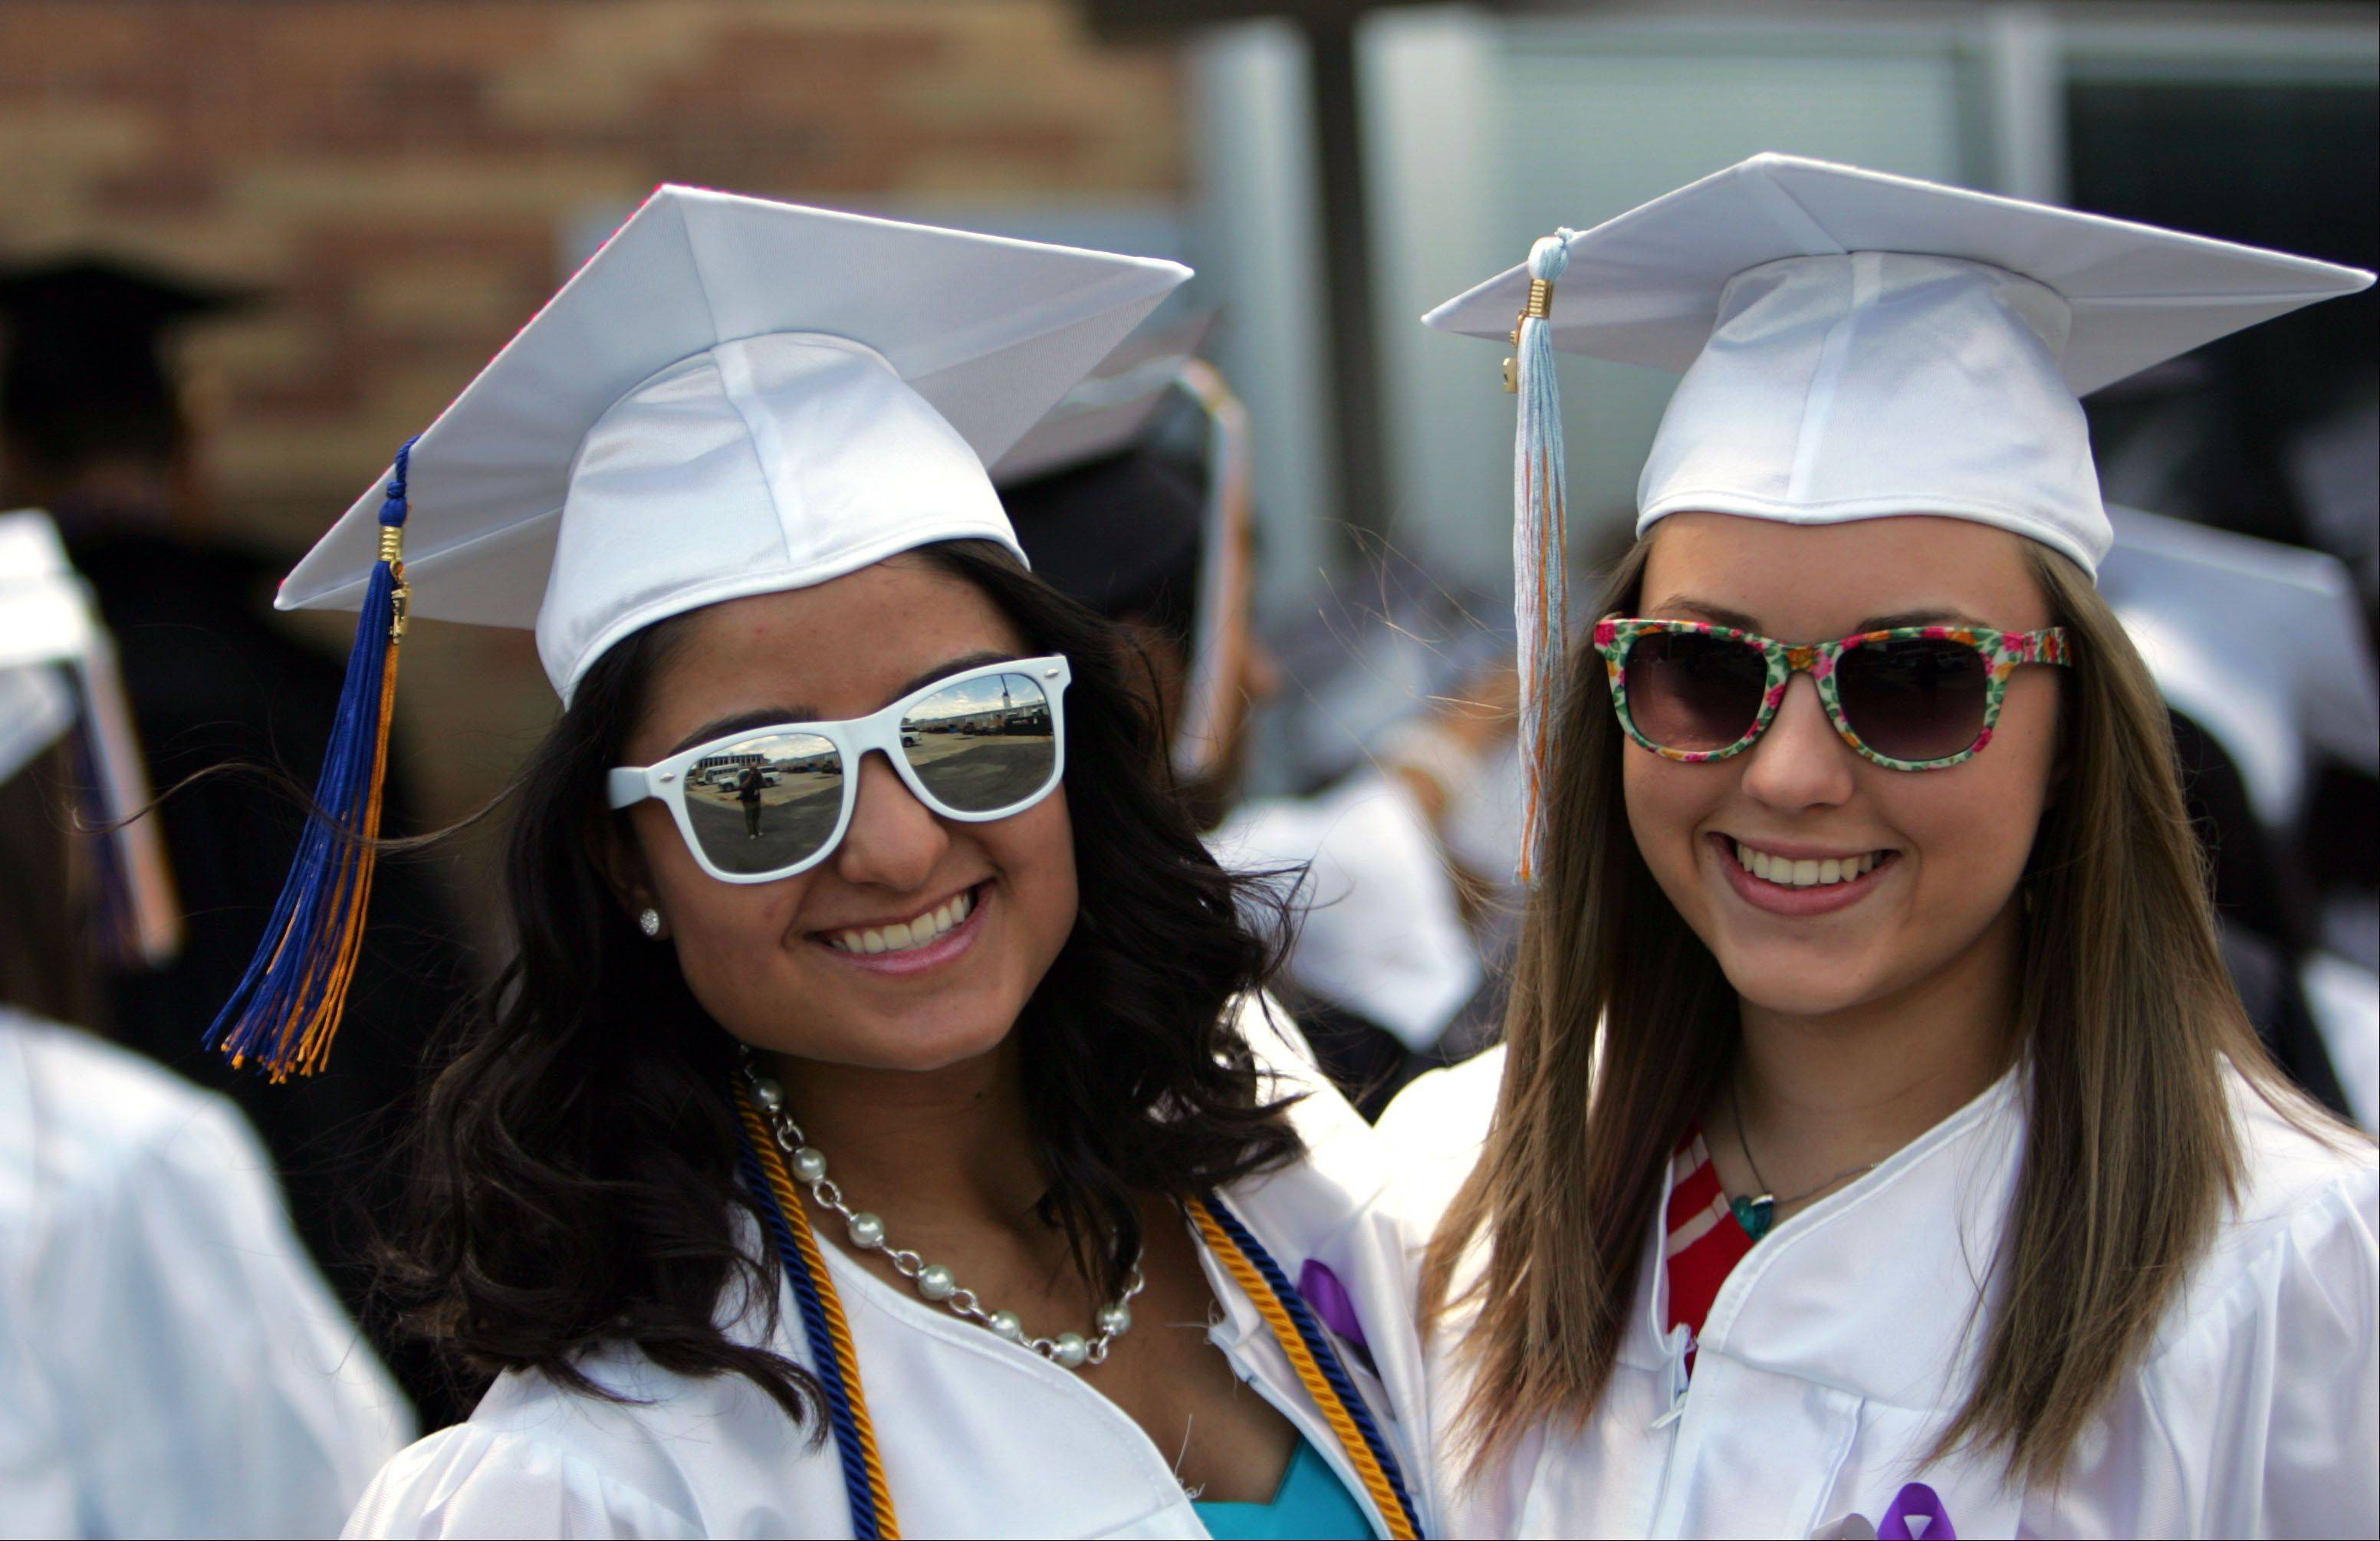 Images from the Maine West High School graduation on Sunday, June 3rd in Des Plaines.